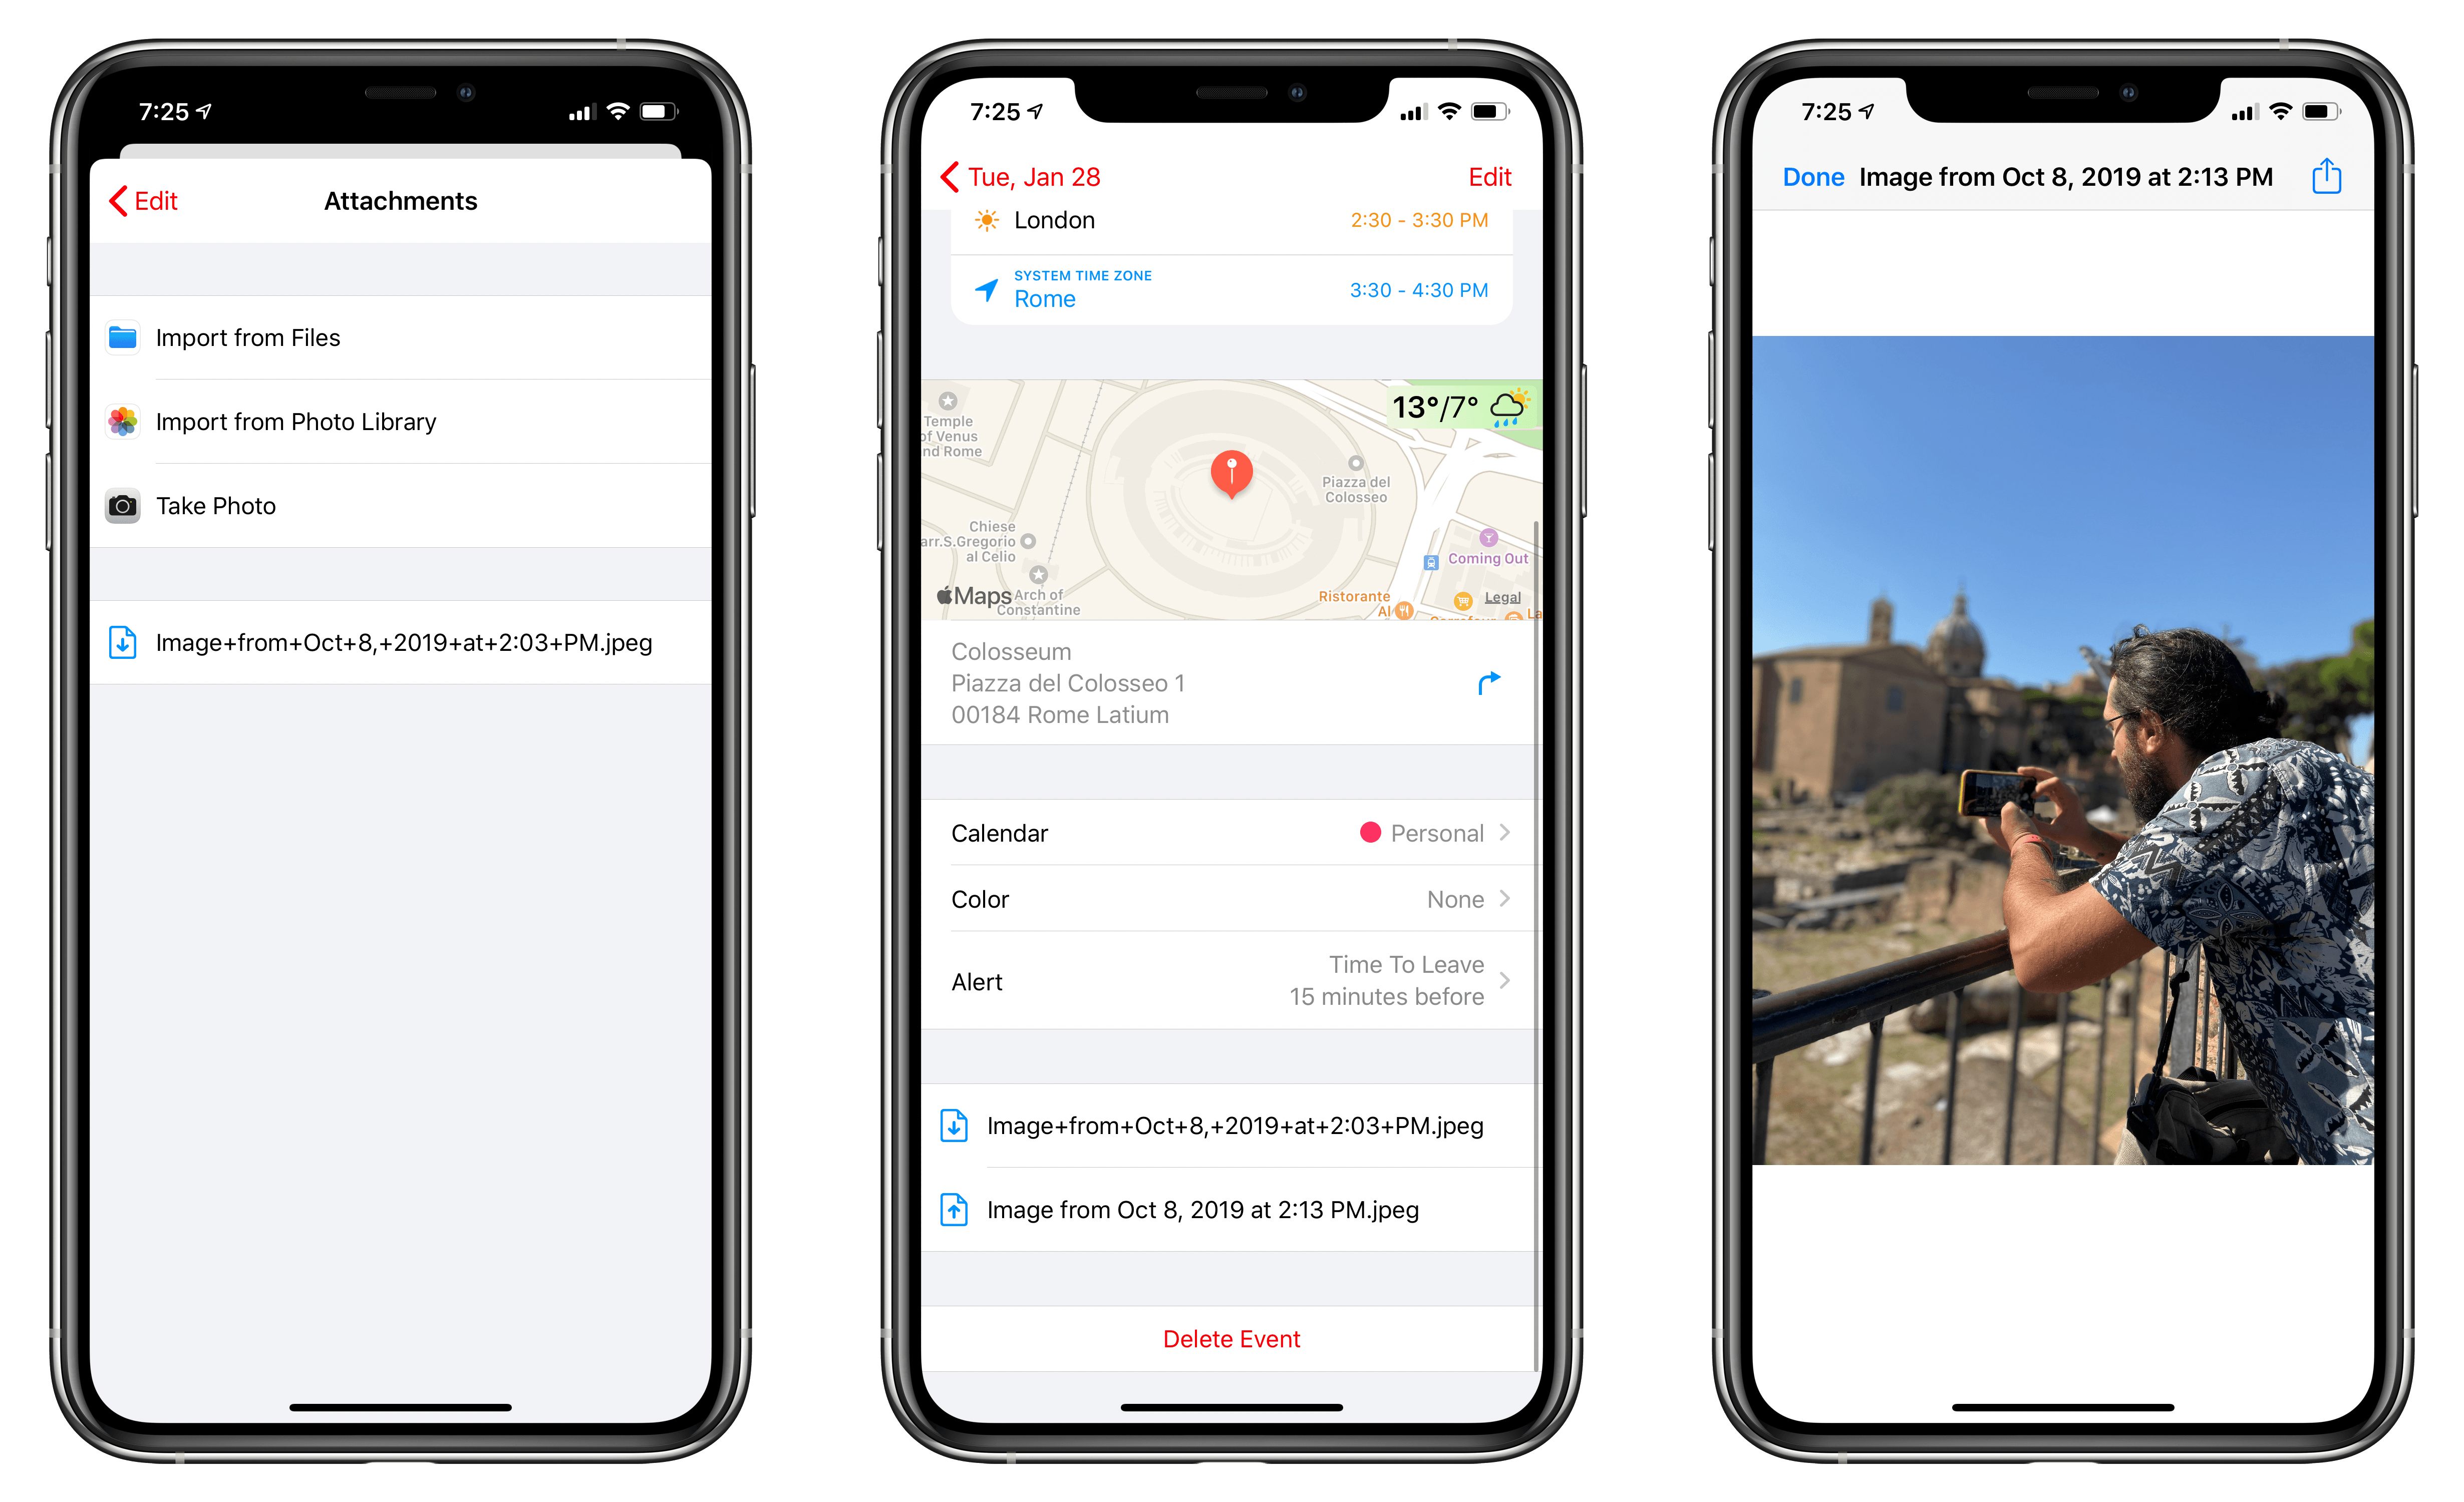 You can add attachments to events in the new Fantastical.